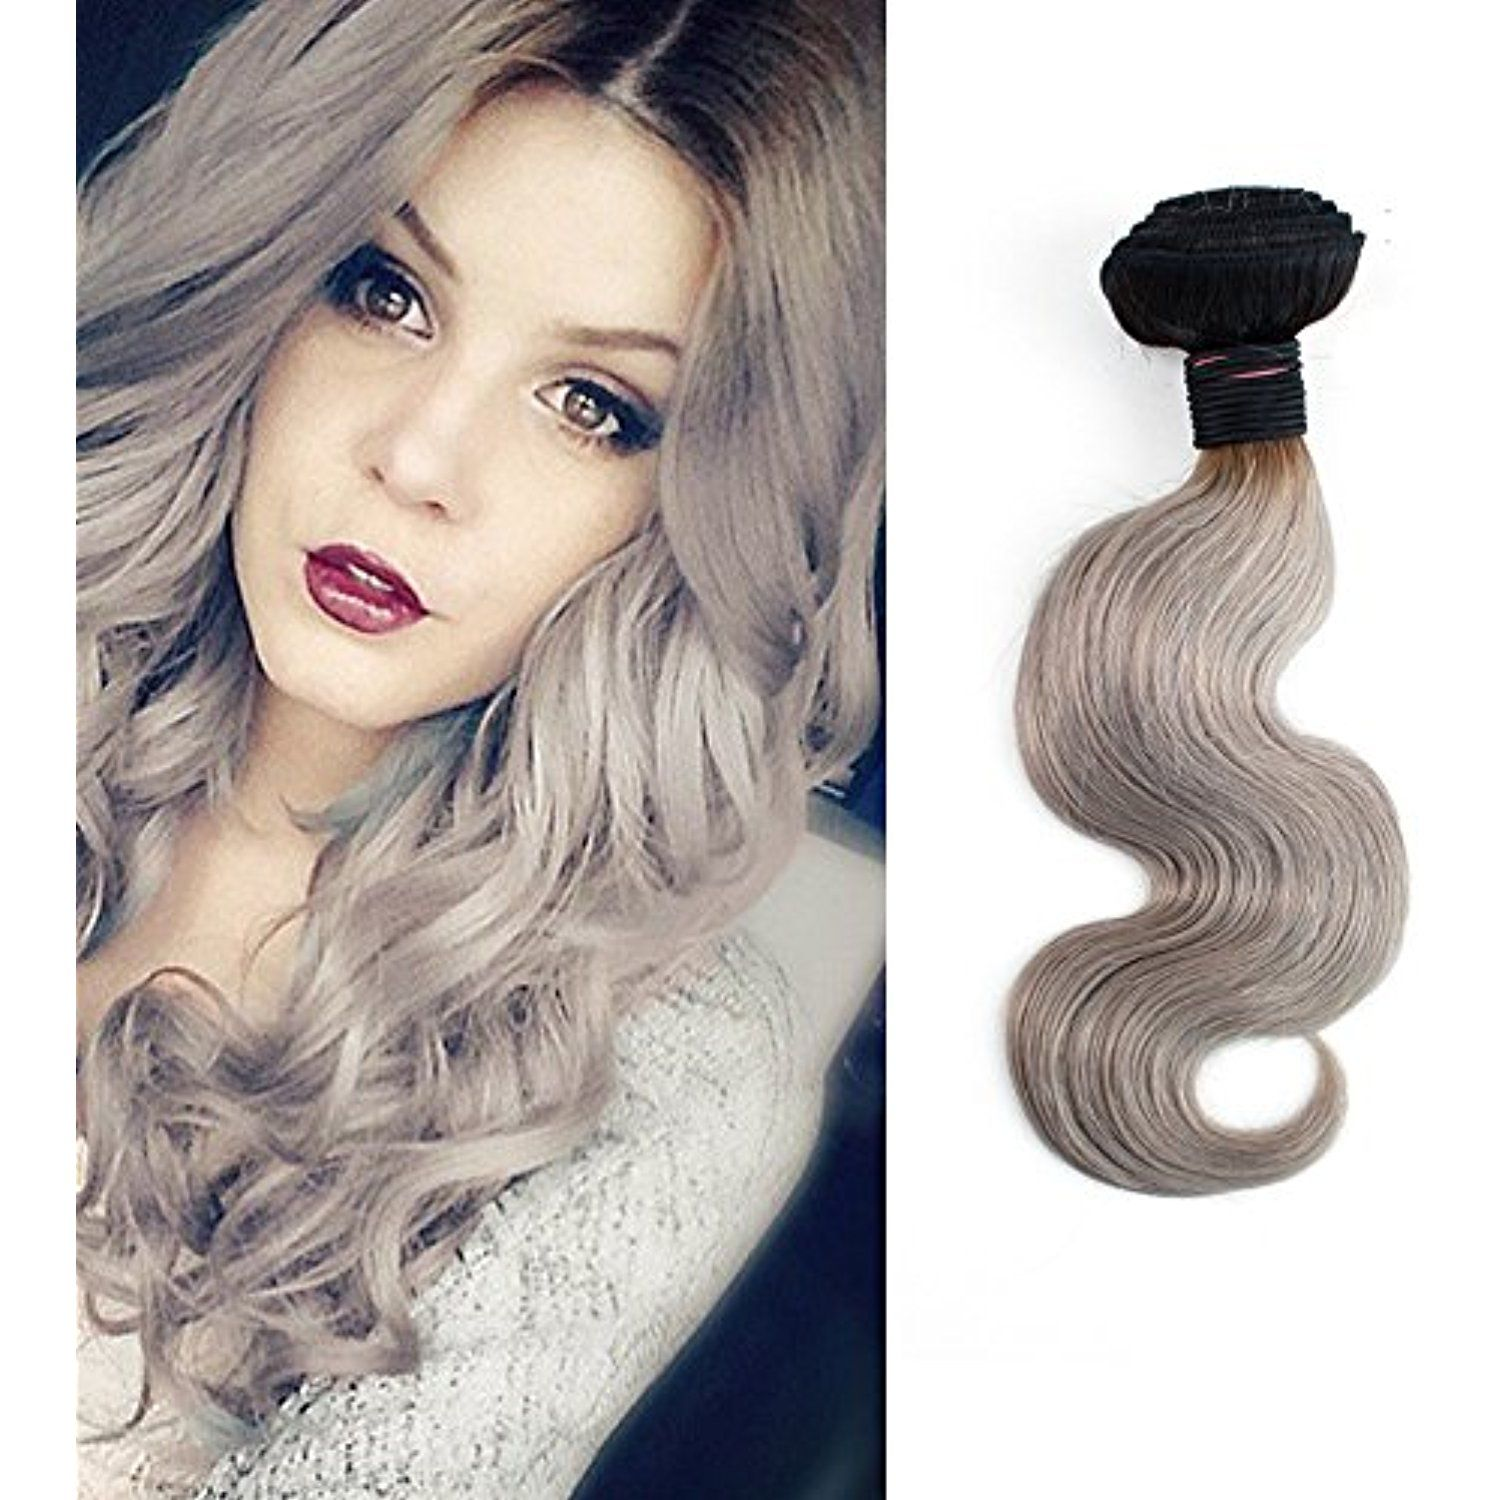 dlingli hair brazilian virgin hair weave gray color body